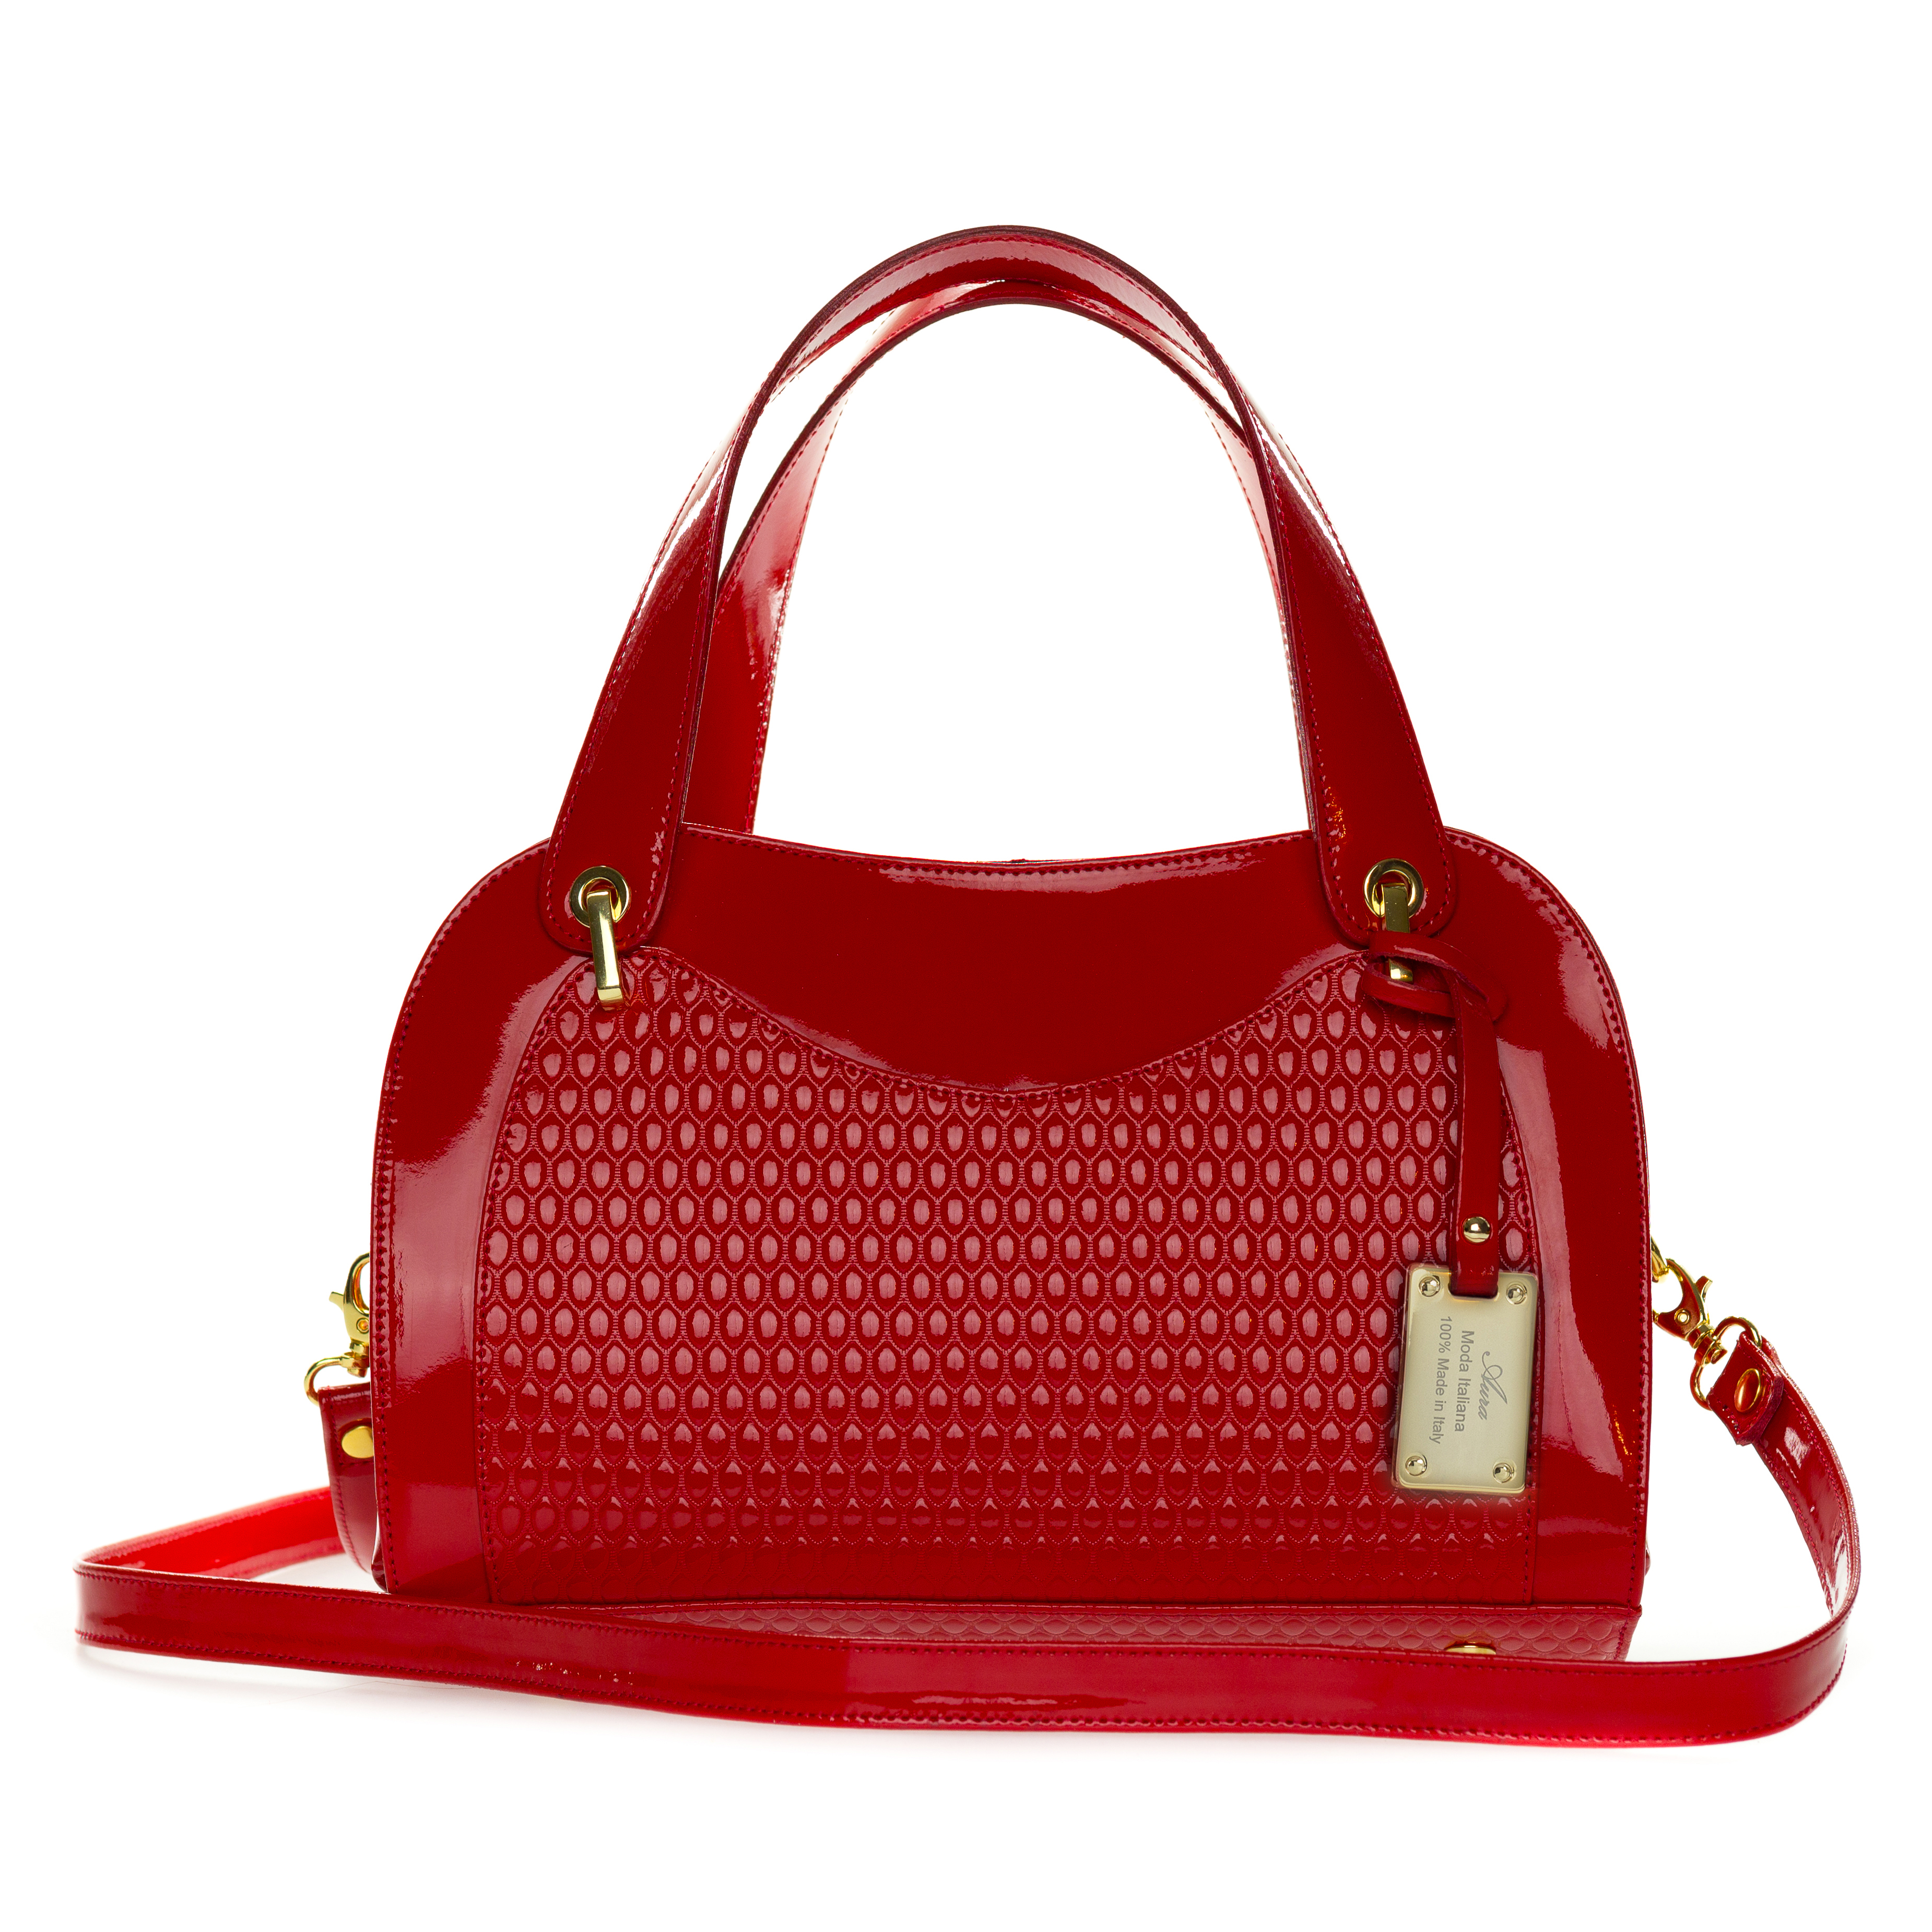 AURA Italian Made Red Patent Embossed Leather Satchel Handbag - /CLEARANCE/